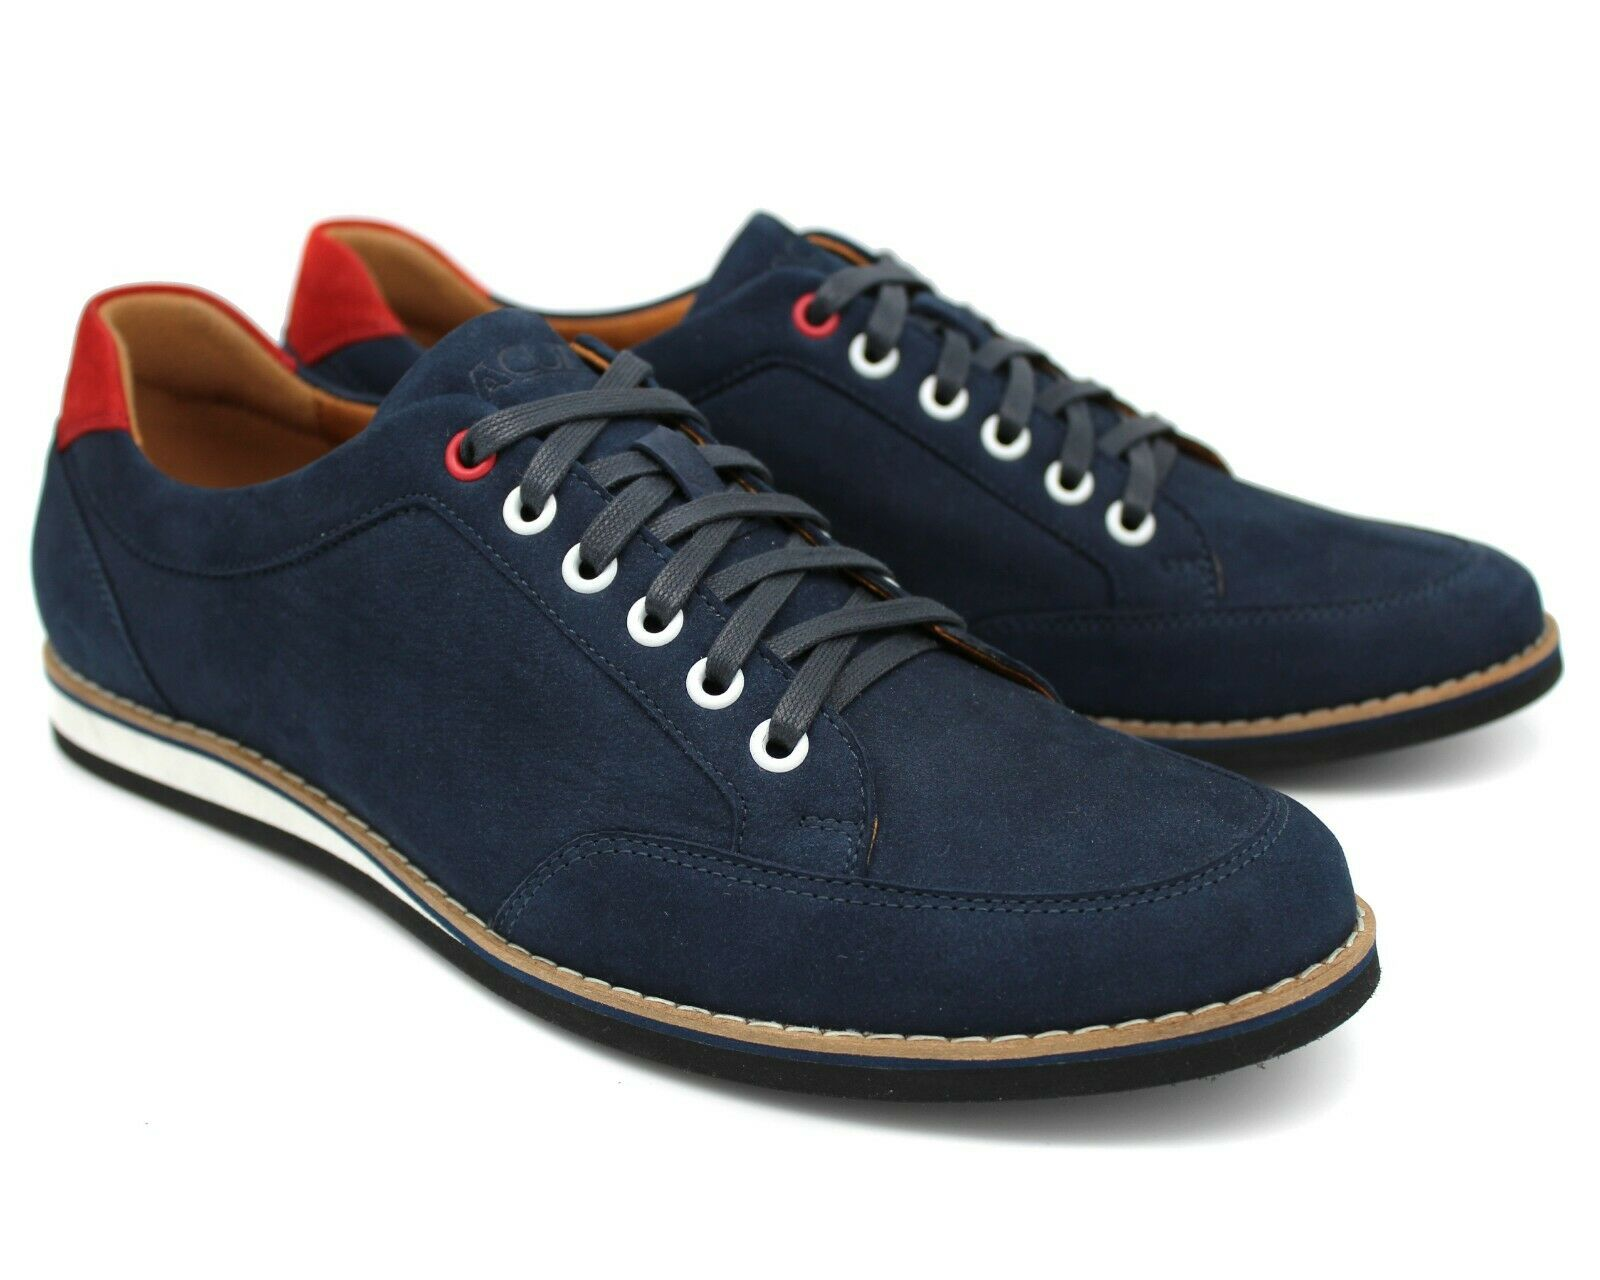 S59 UK 7 MENS NAVY blueE REAL SUEDE TRAINERS SNEAKERS SPORT ITALIAN SHOES EU 41